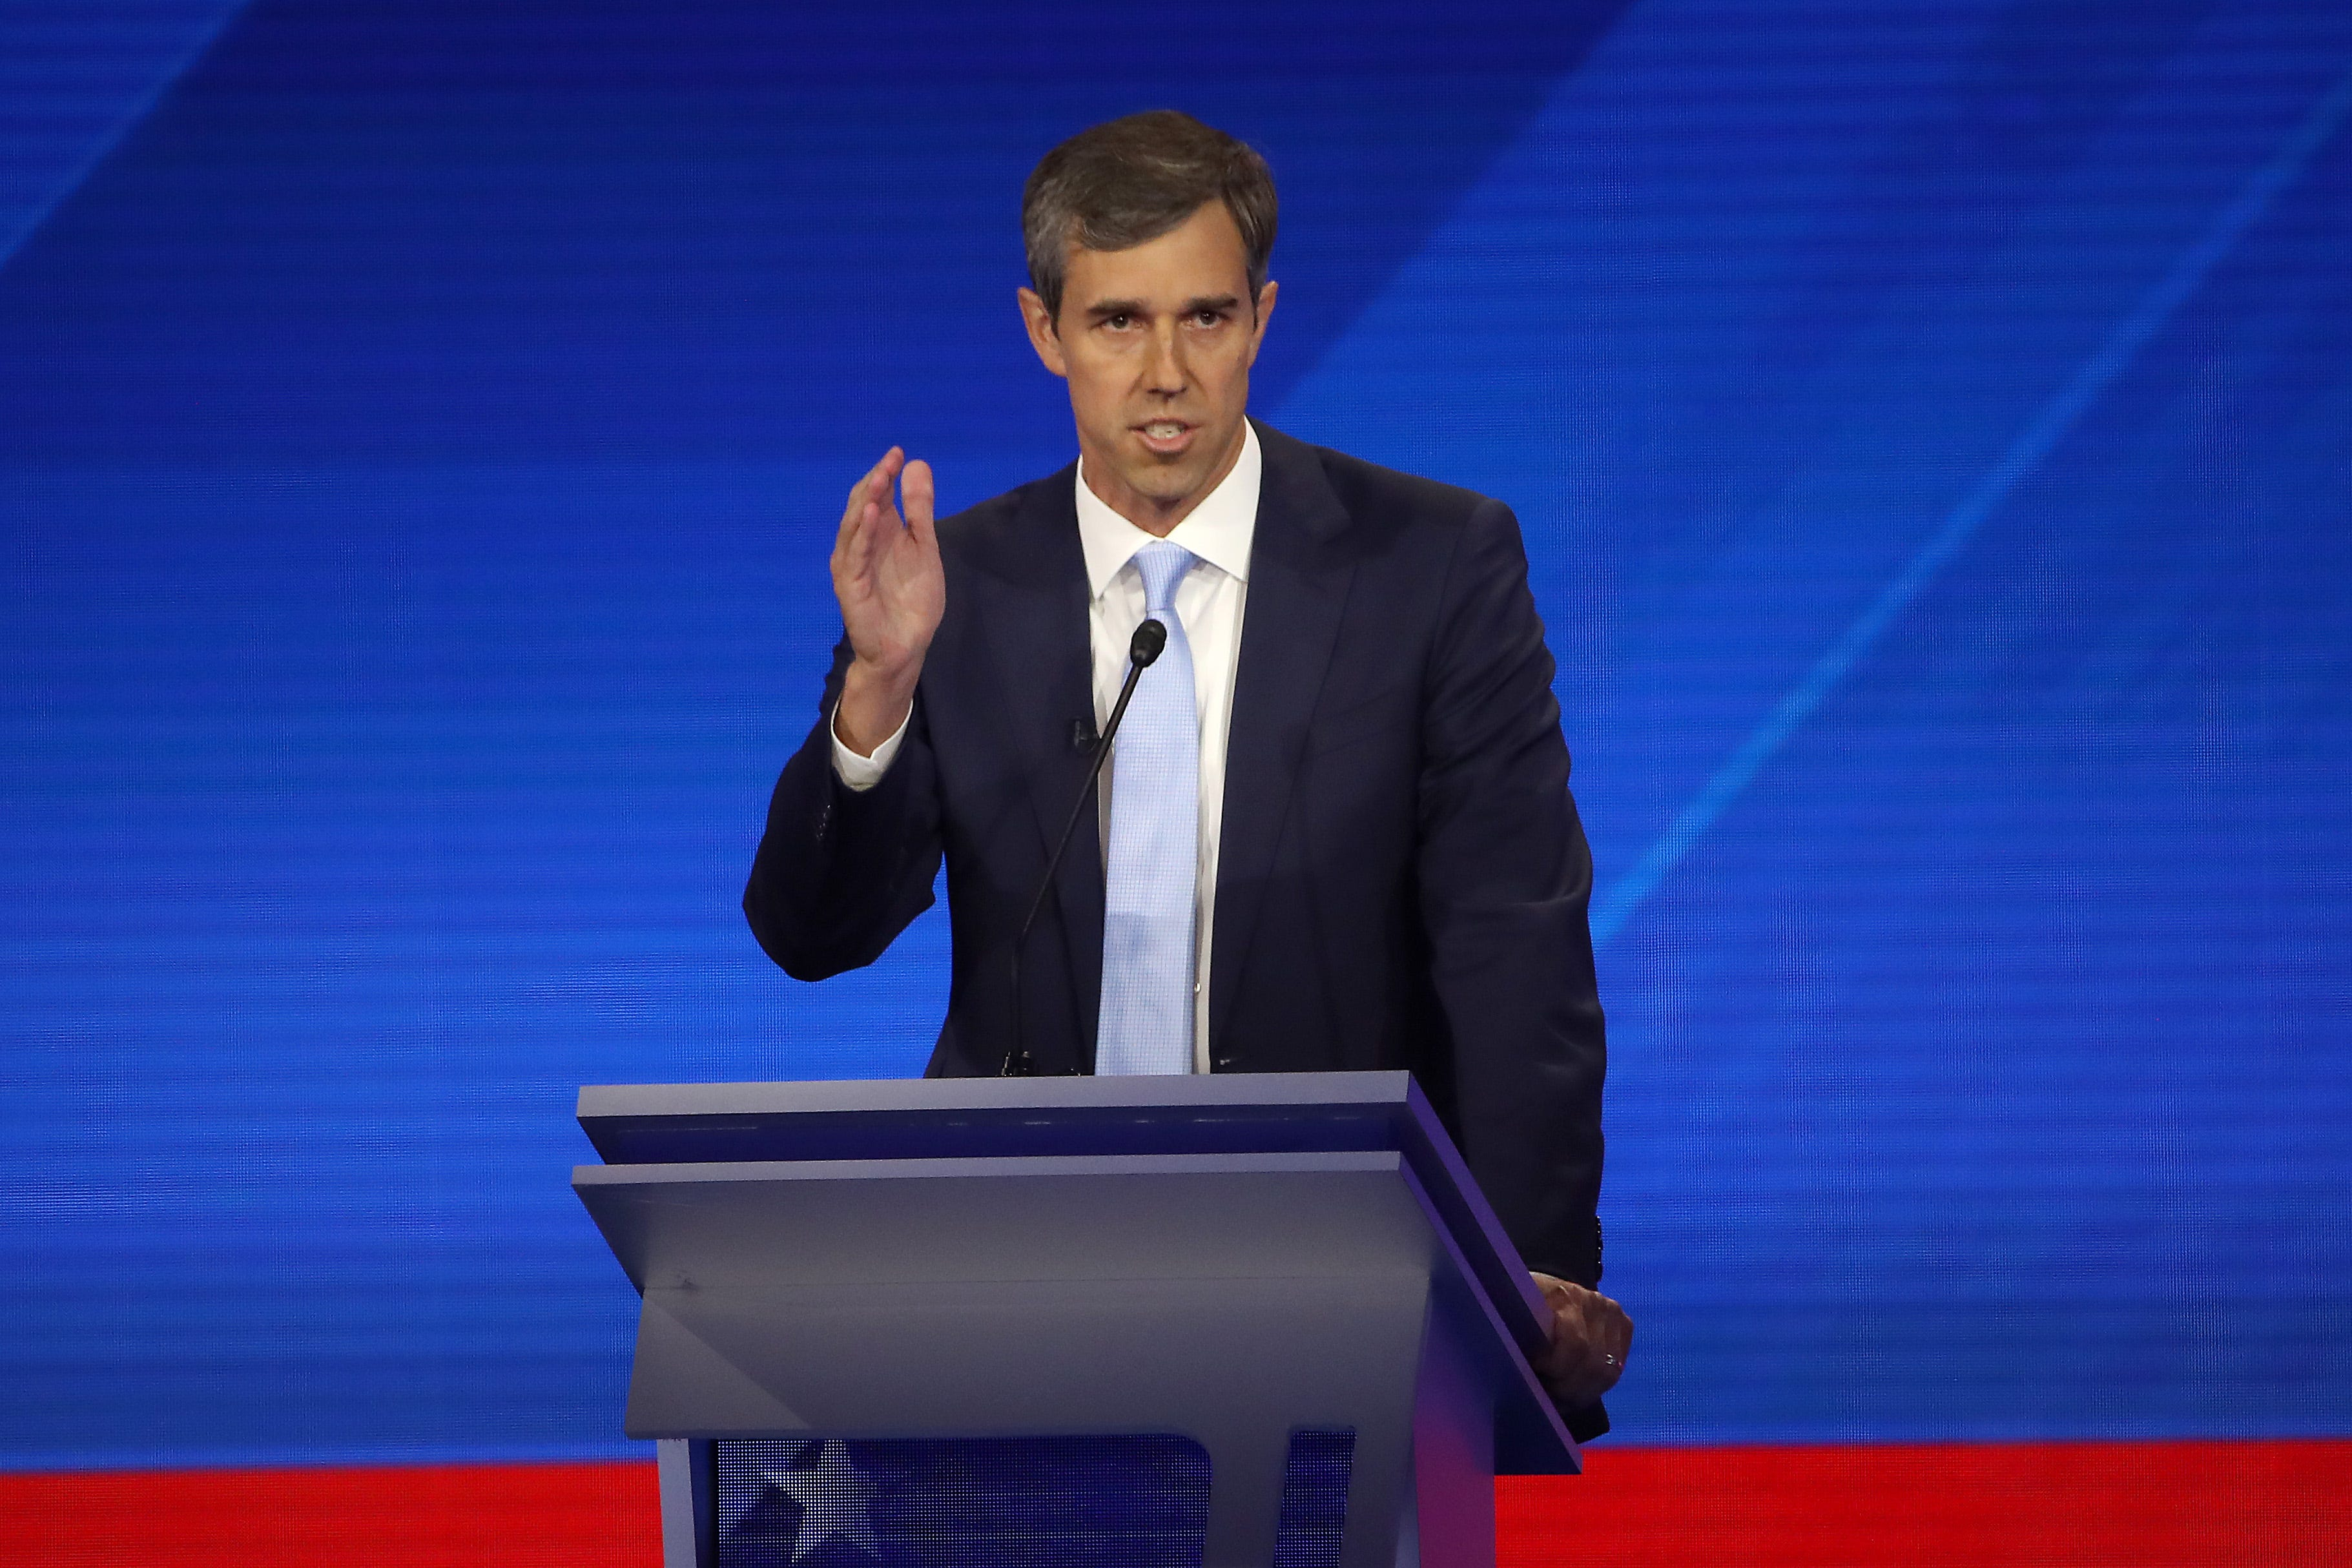 Democratic debate: Who were the winners and losers